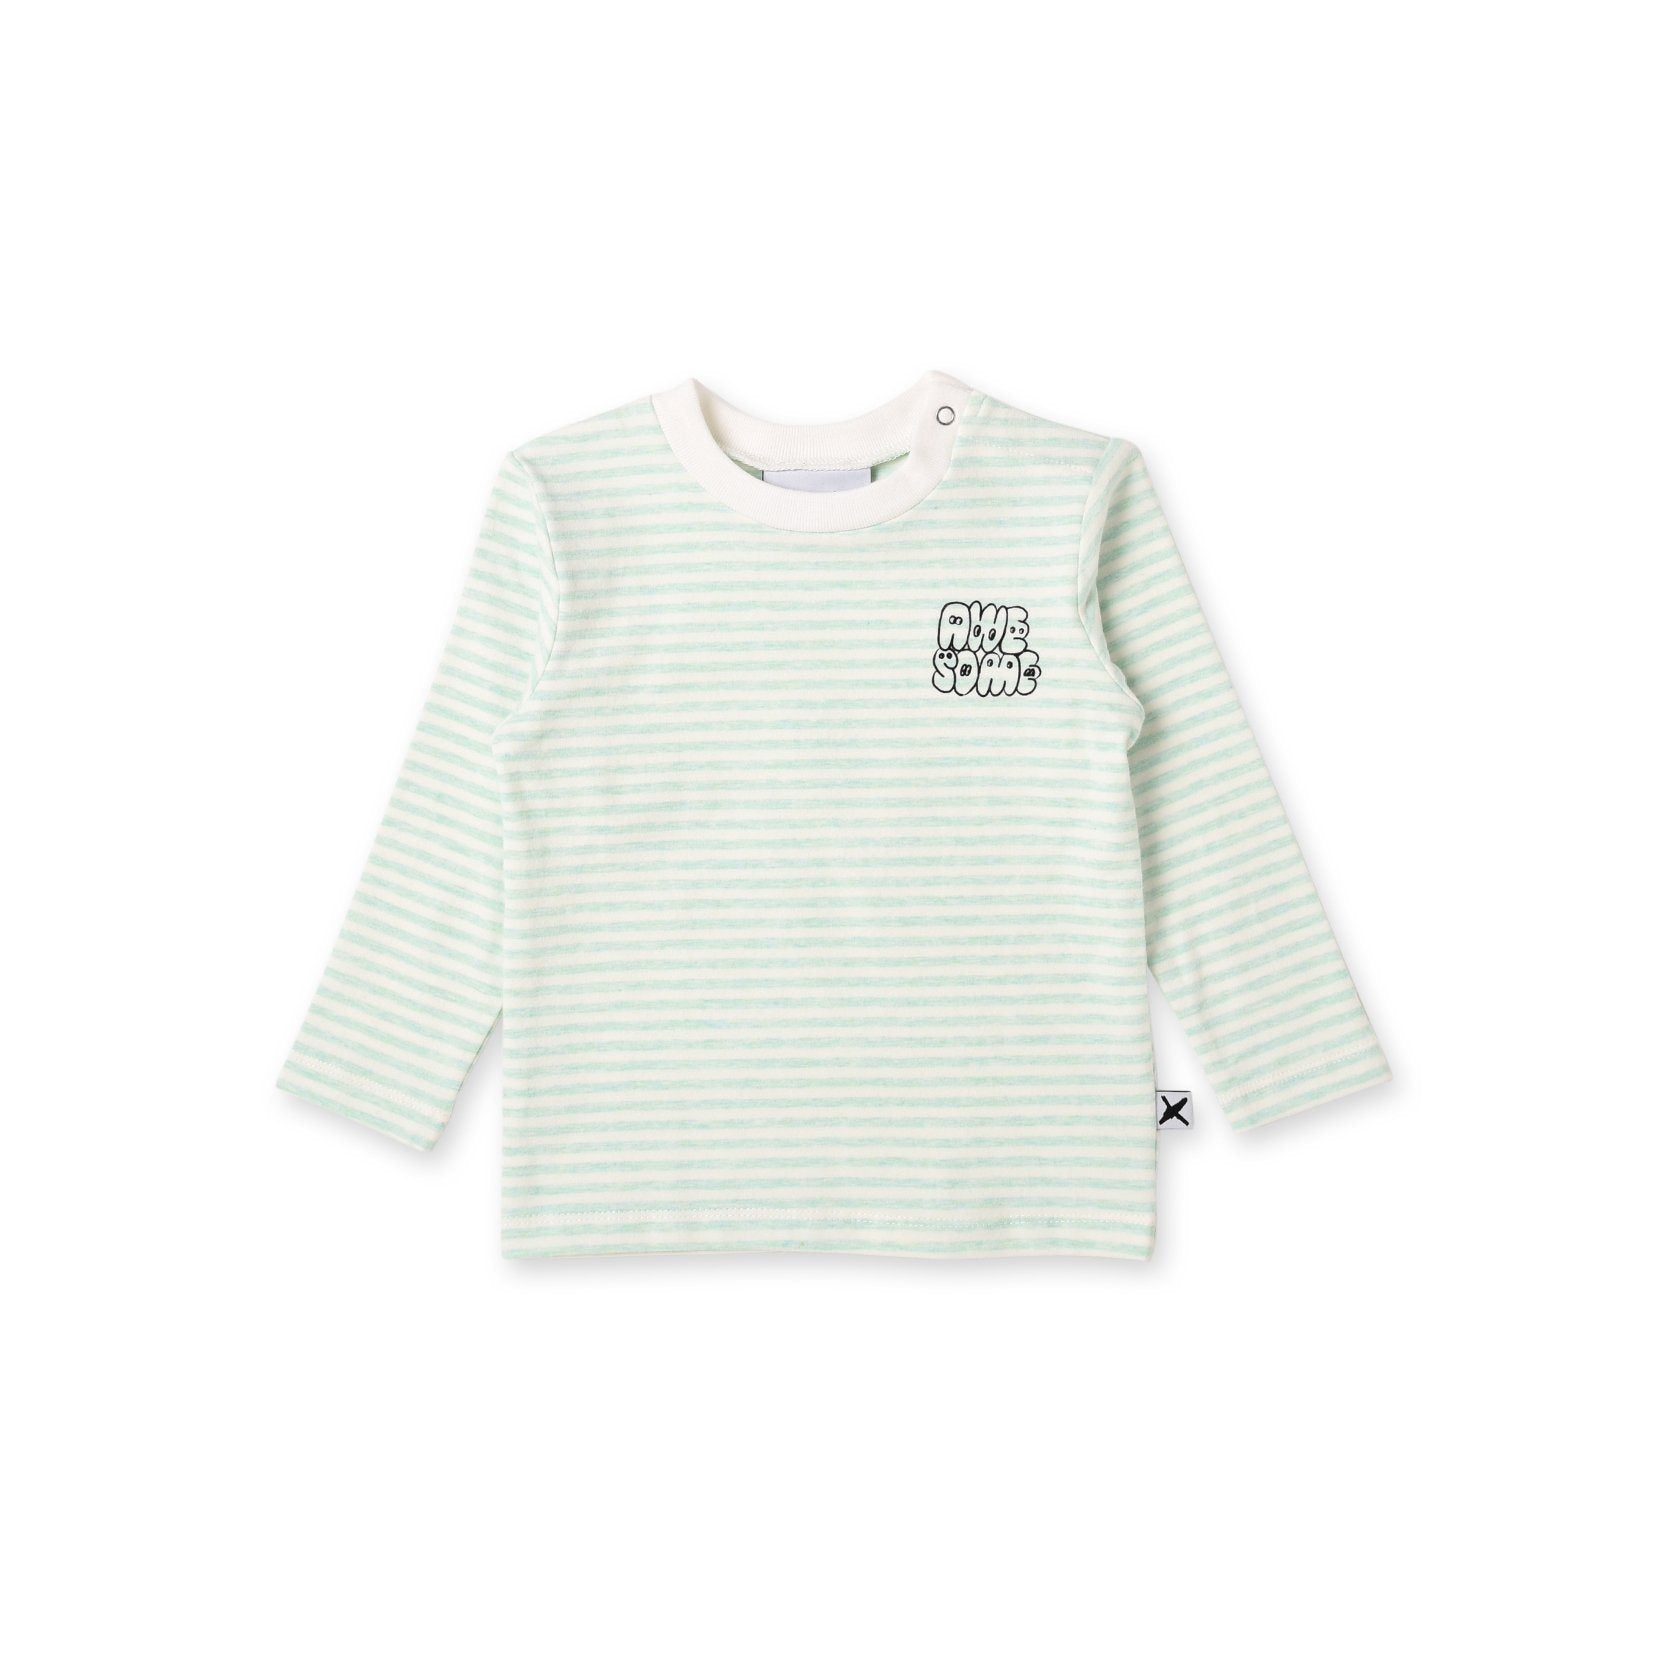 Awesome Baby Tee (Mint Stripe)